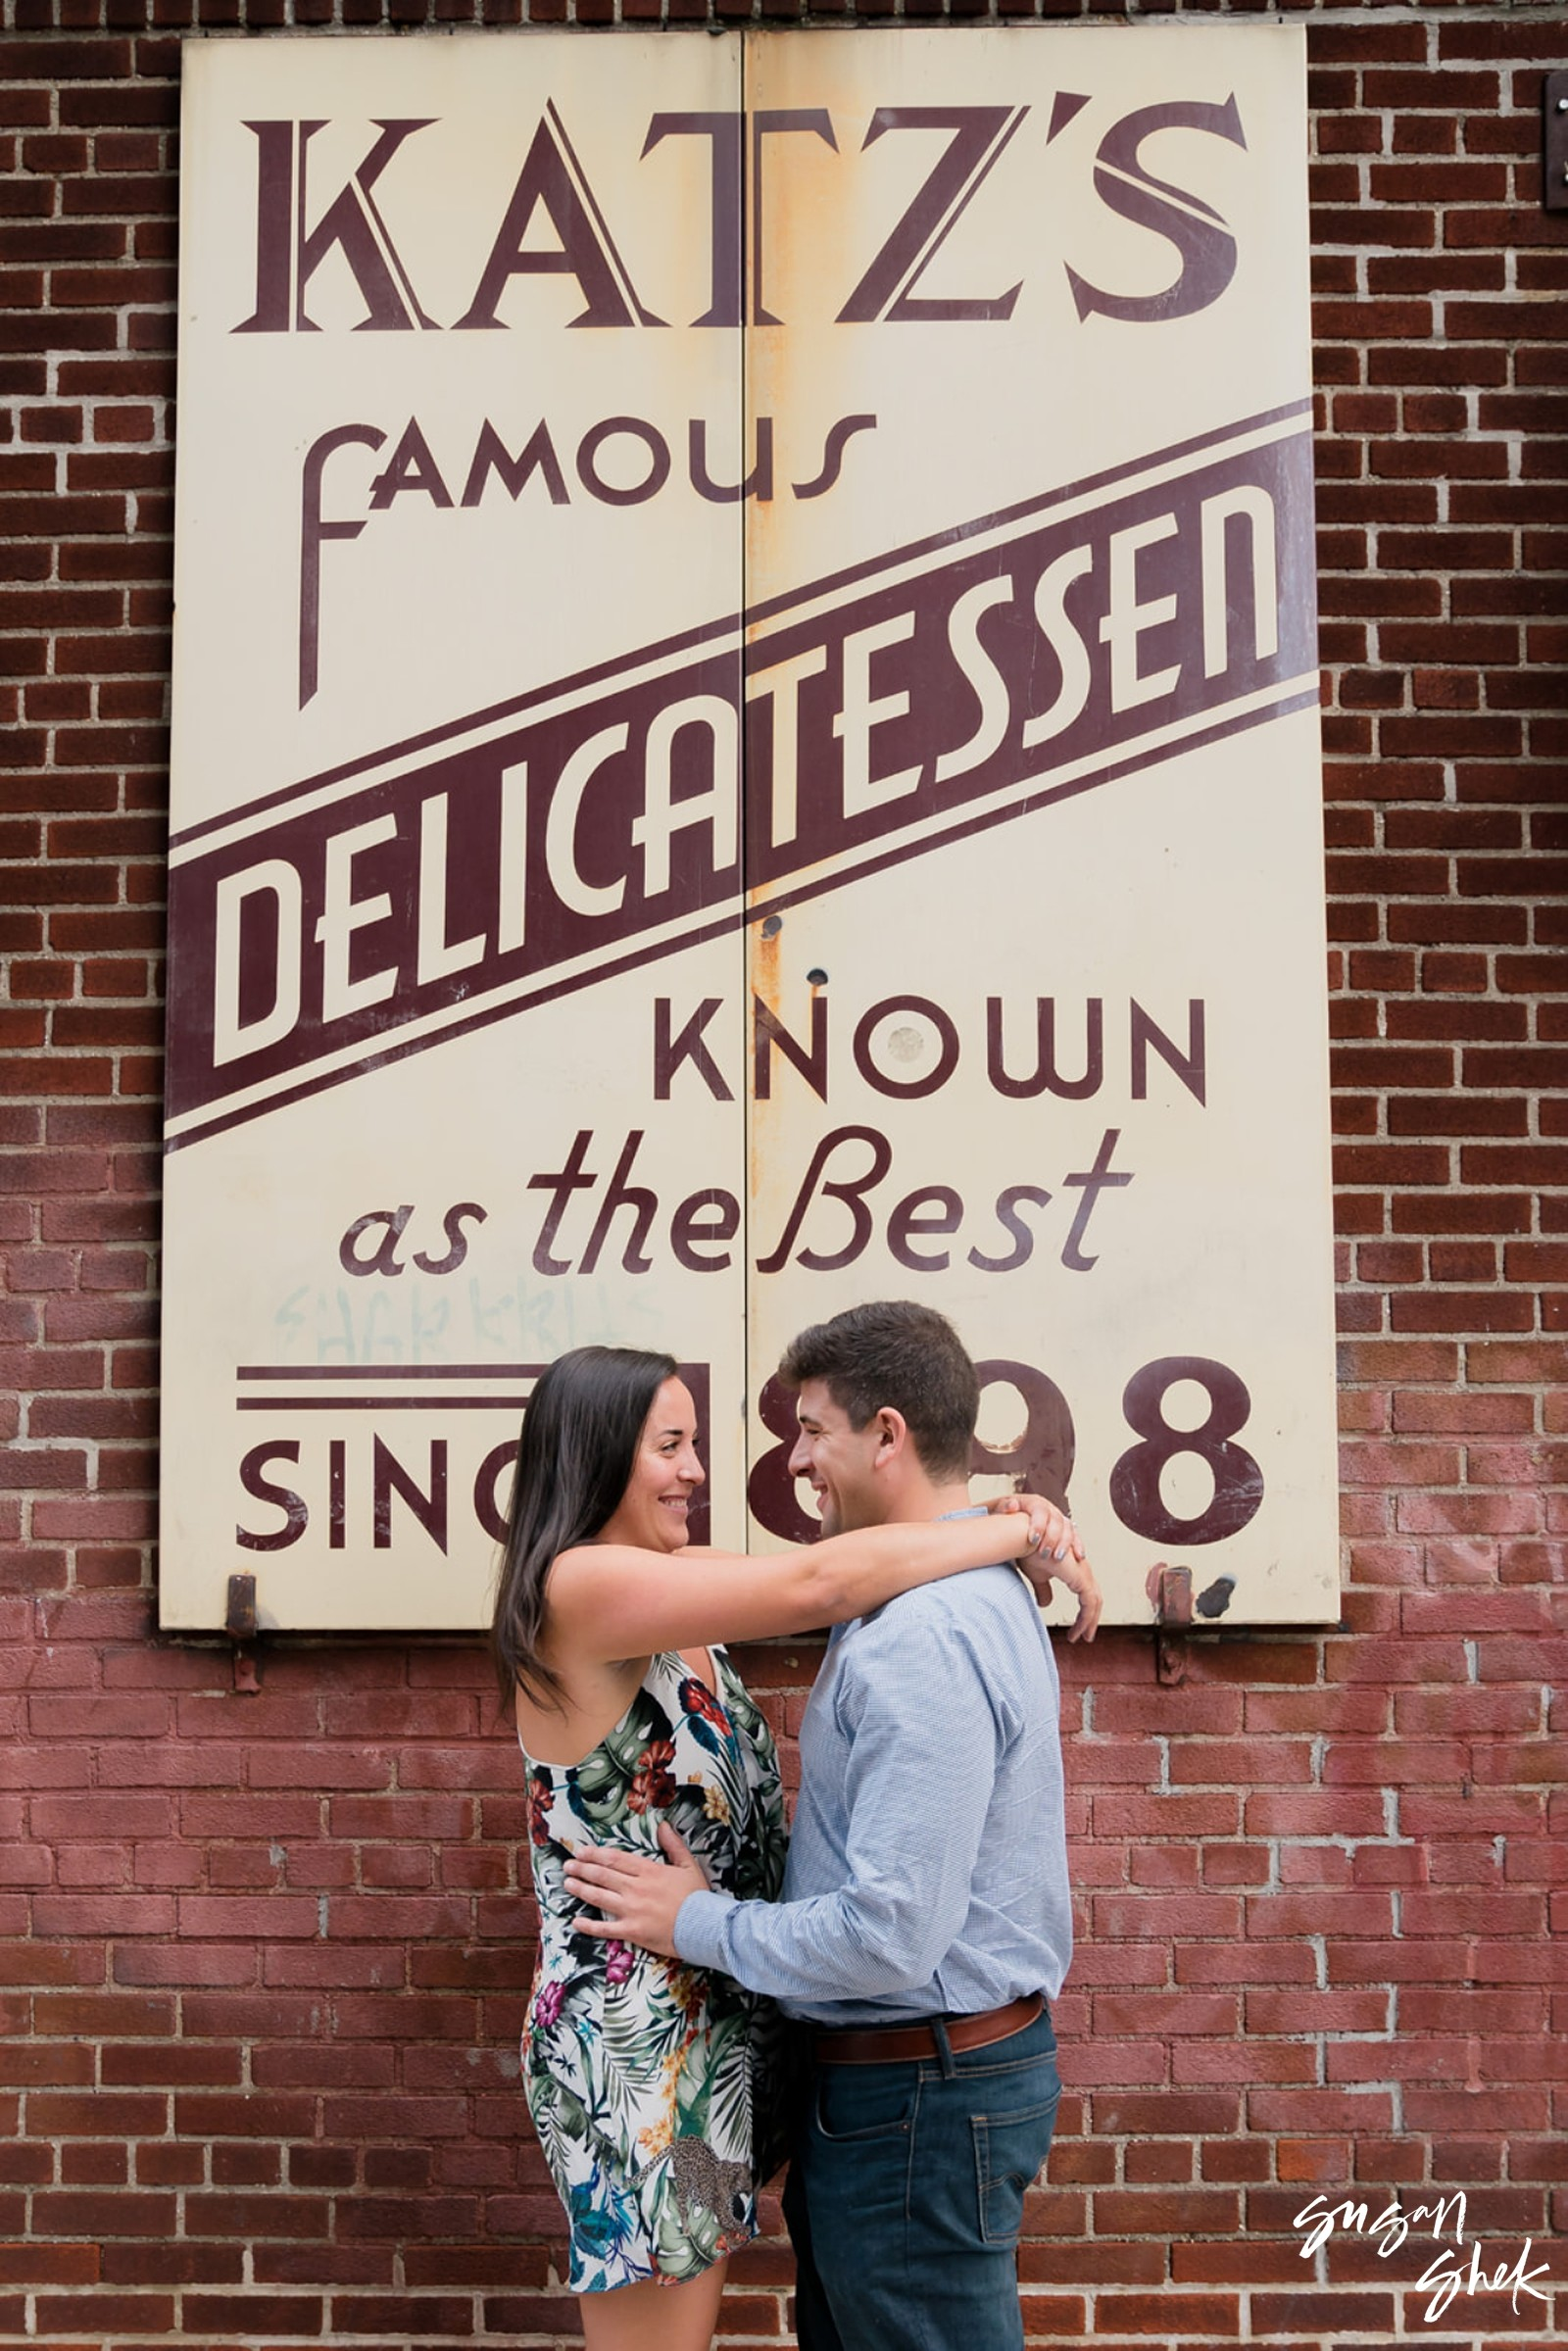 Katz Deli Engagment, Katz Deli, Katz Deli Engagement Session, Engagement Shoot, NYC Engagement Photographer, Engagement Session, Engagement Photography, Engagement Photographer, NYC Wedding Photographer